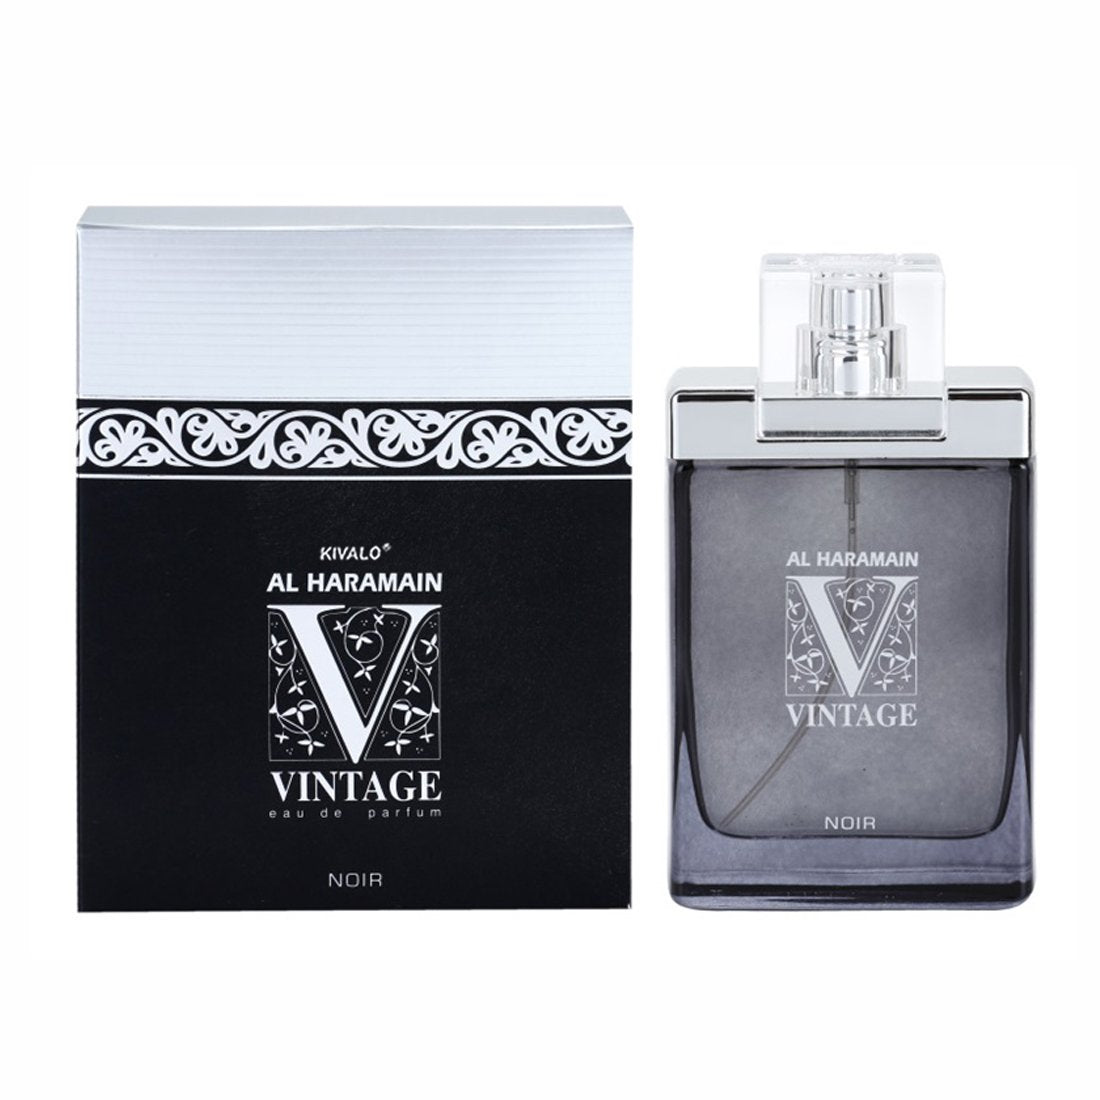 Al Haramain Vintage Noir Perfume Spray - 100 ml